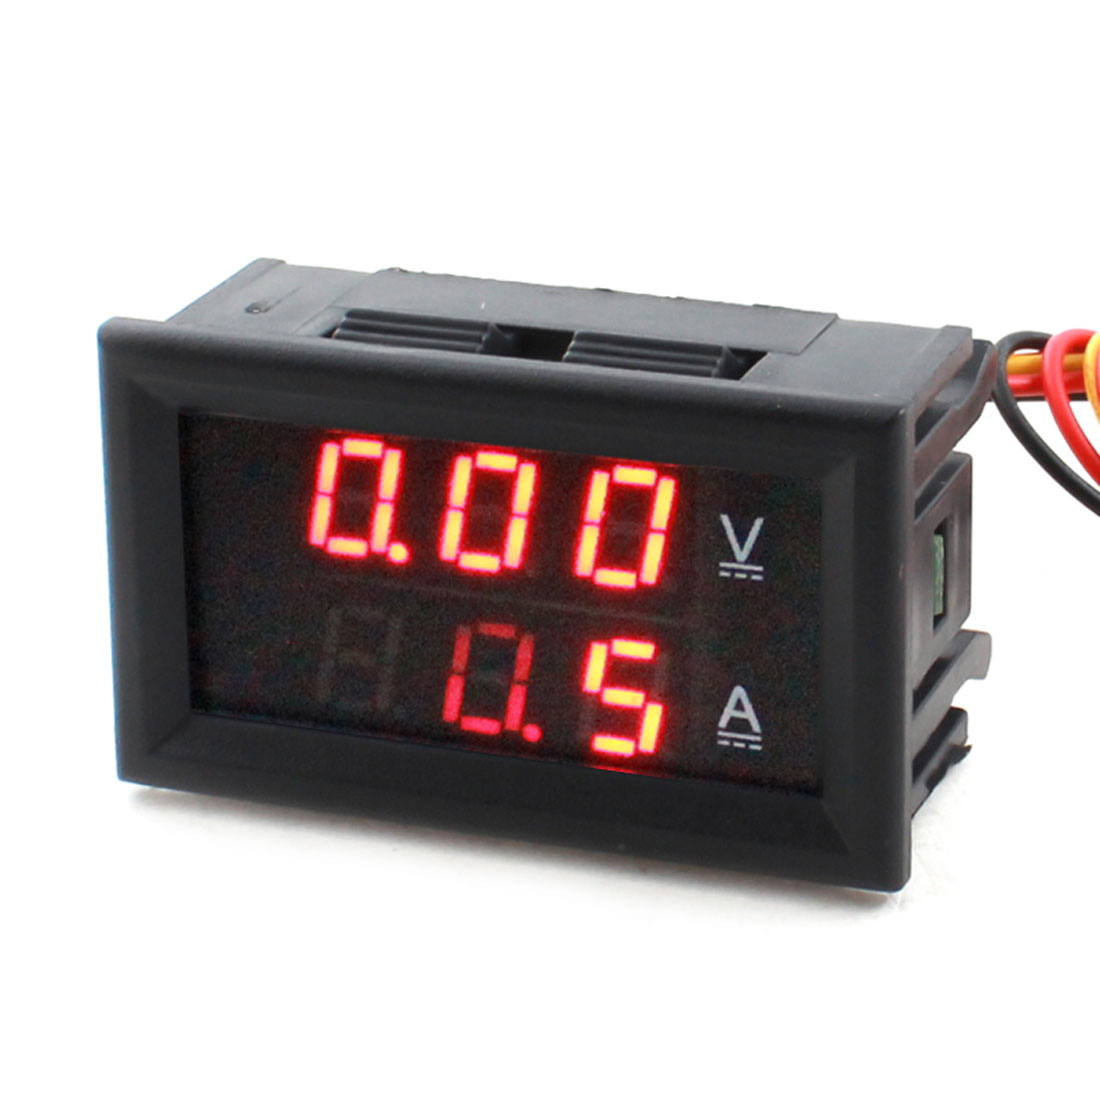 DC 0-100V 100A Wire Leads Red Digits LED Digital Display Panel Gauge Ammeter Voltmeter Volt Ampere Meter